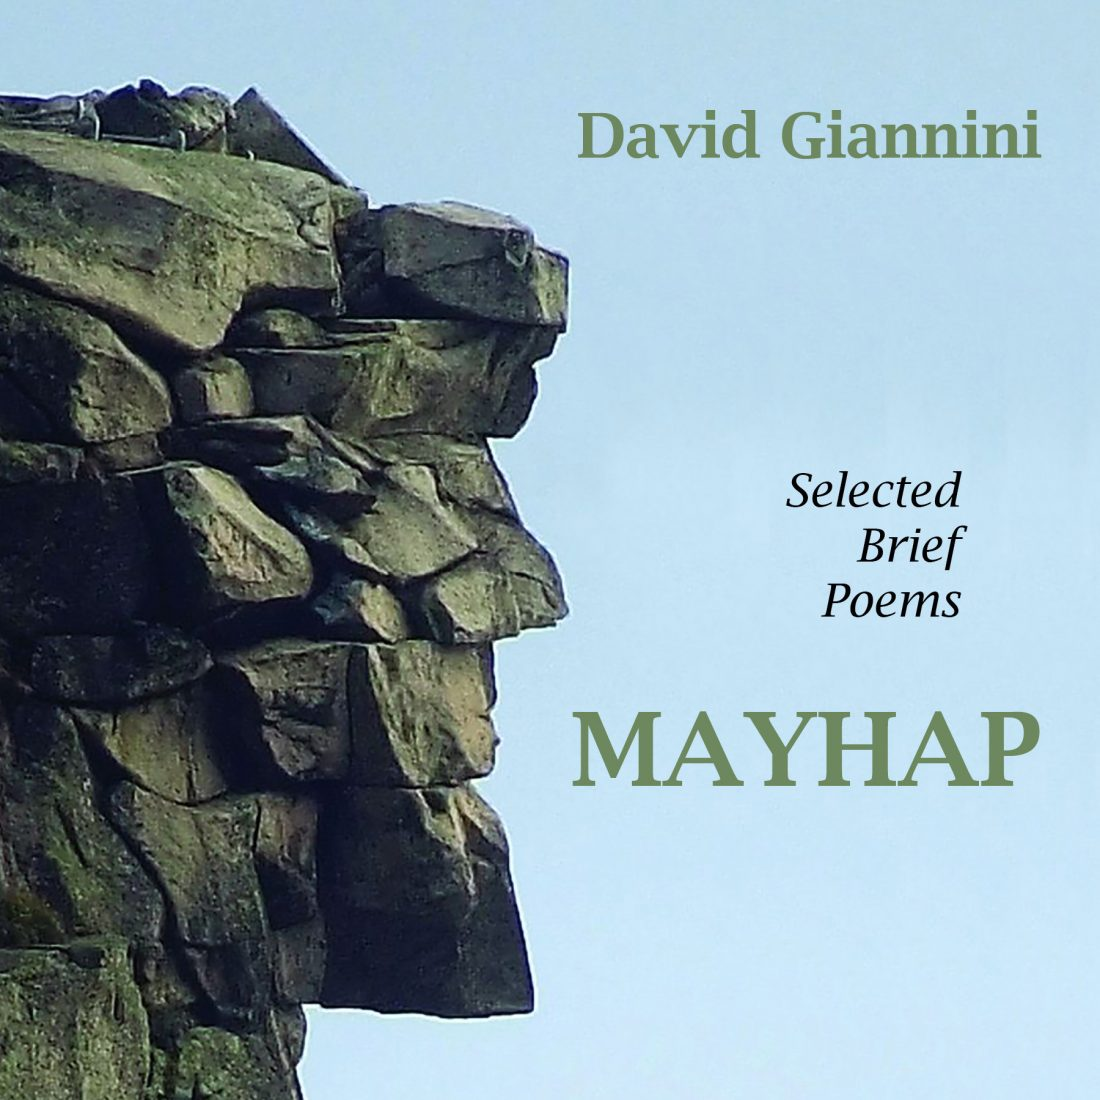 Mayhap by David Giannini